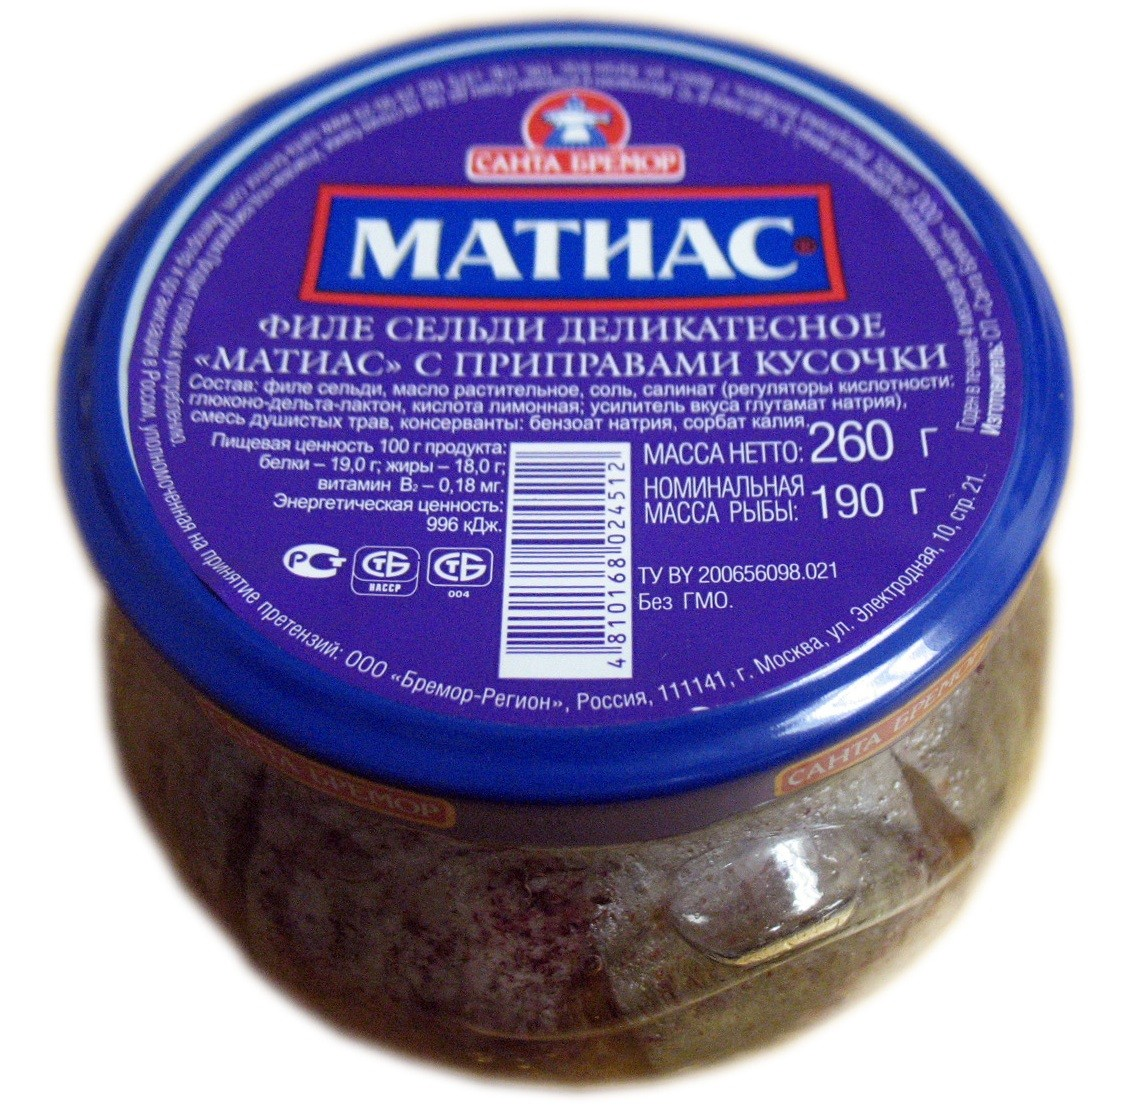 Herring in Oil with Spices, Matjias, 9.17 oz / 260 g